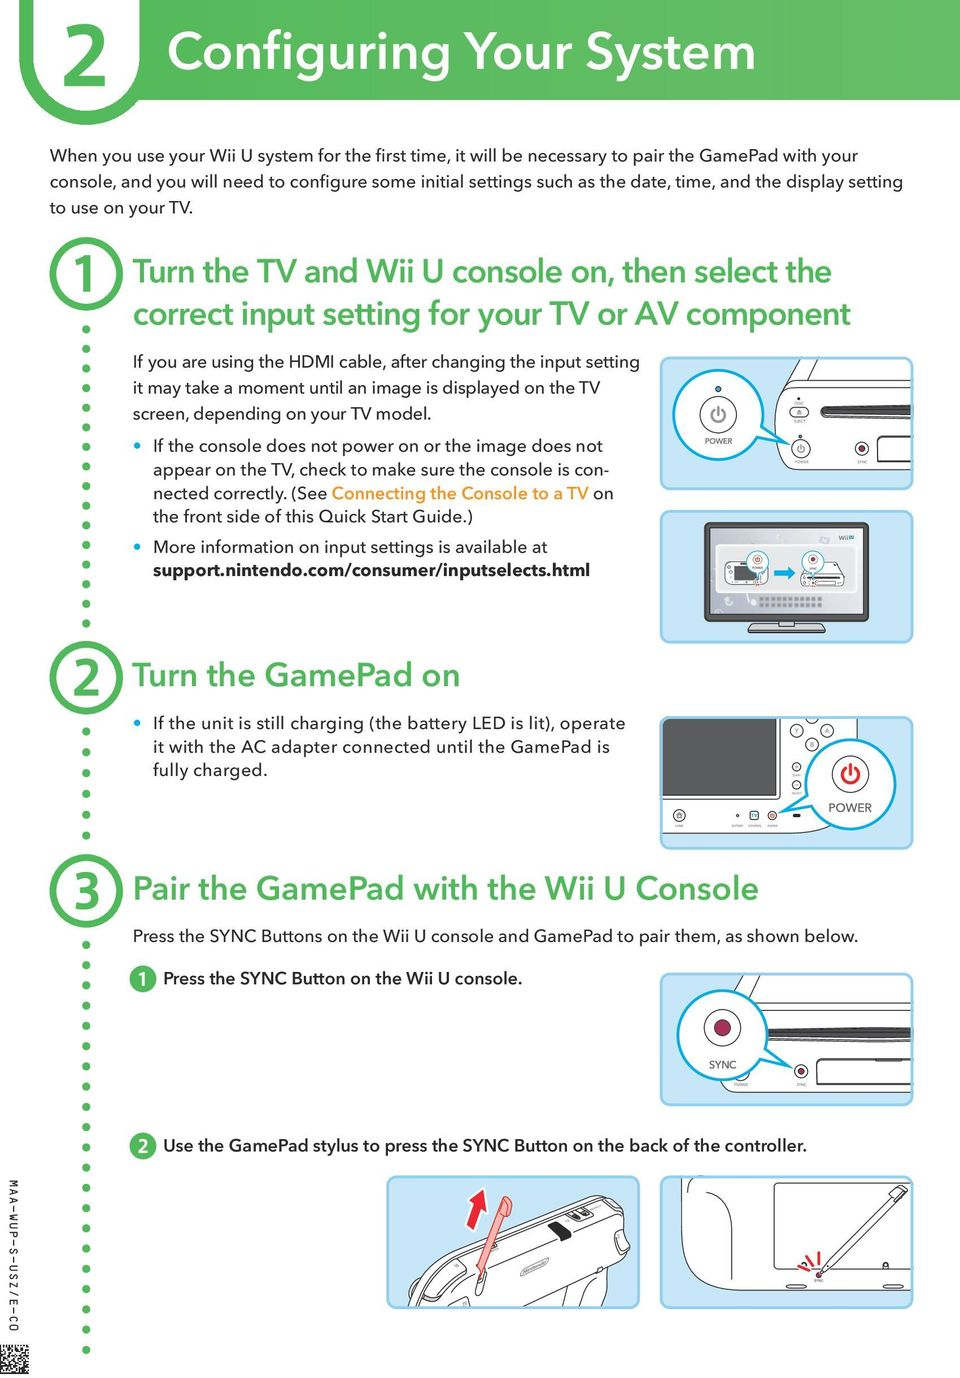 Turn the TV and Wii U console on, then select the correct input setting for your TV or AV component If you are using the HDMI cable, after changing the input setting it may take a moment until an